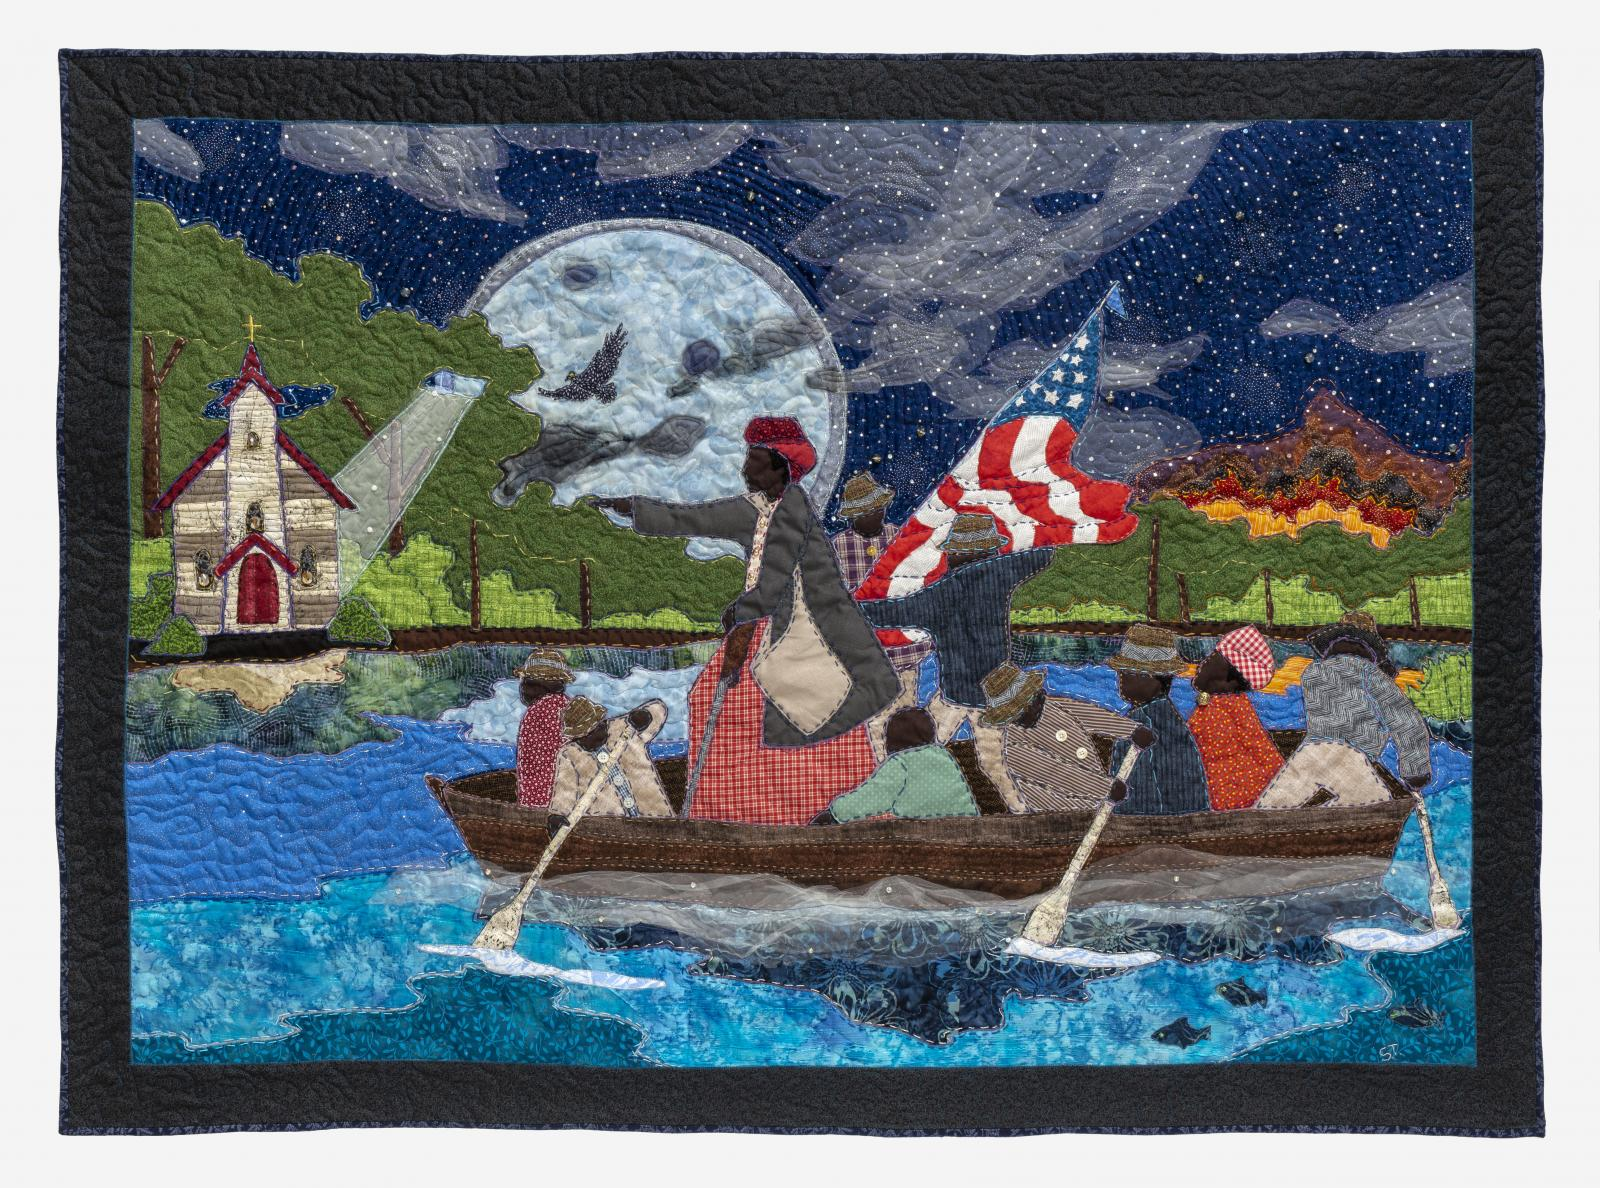 Fiber art piece of people rowing on a boat at night by Stephen Towns